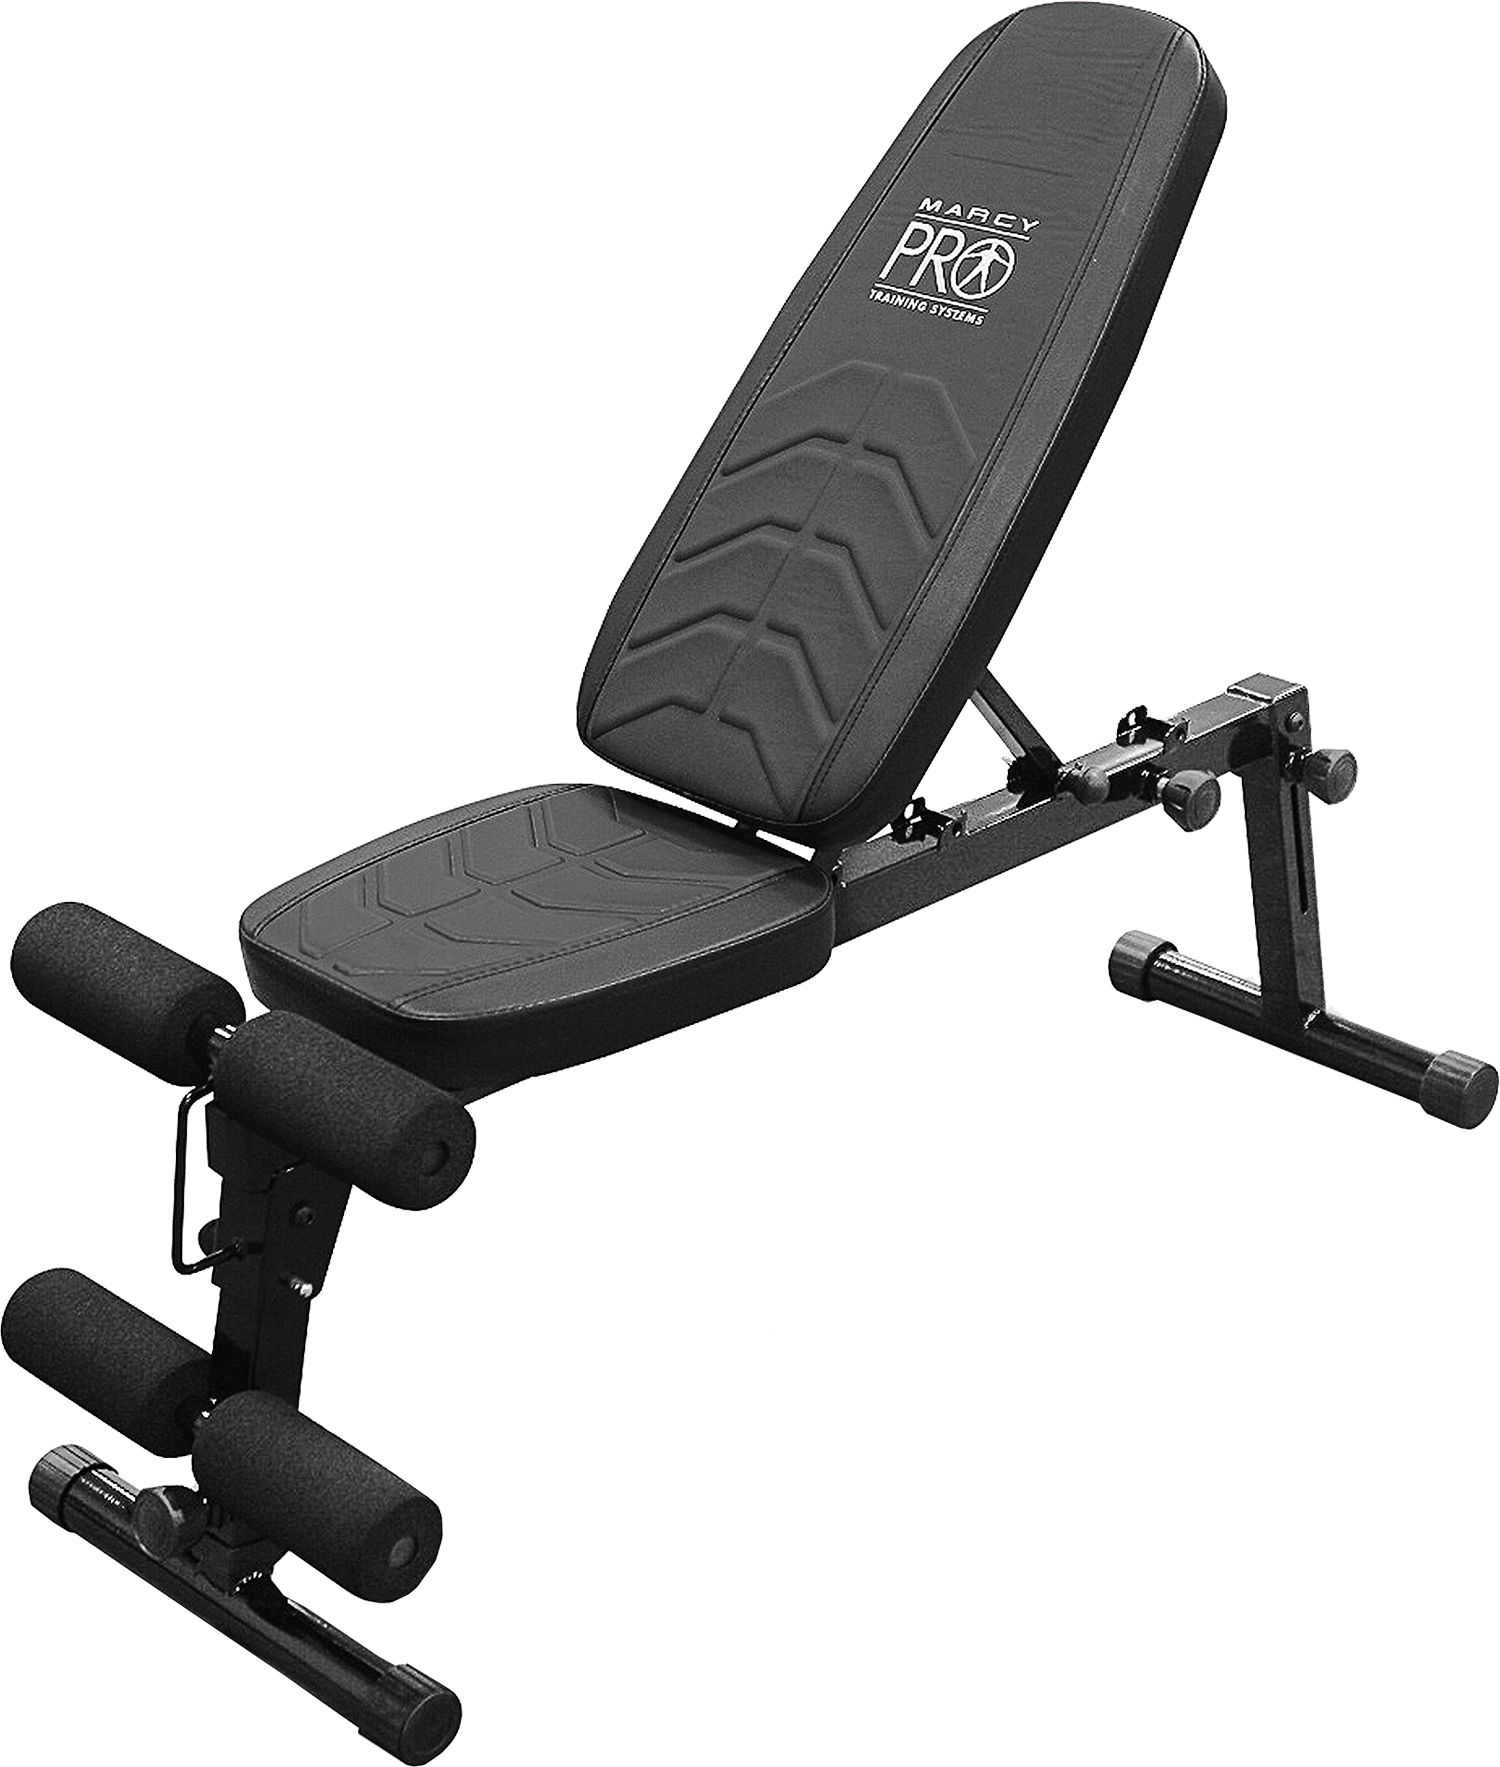 best weigth benches guide a the buy bench with top weights to flexible weight find